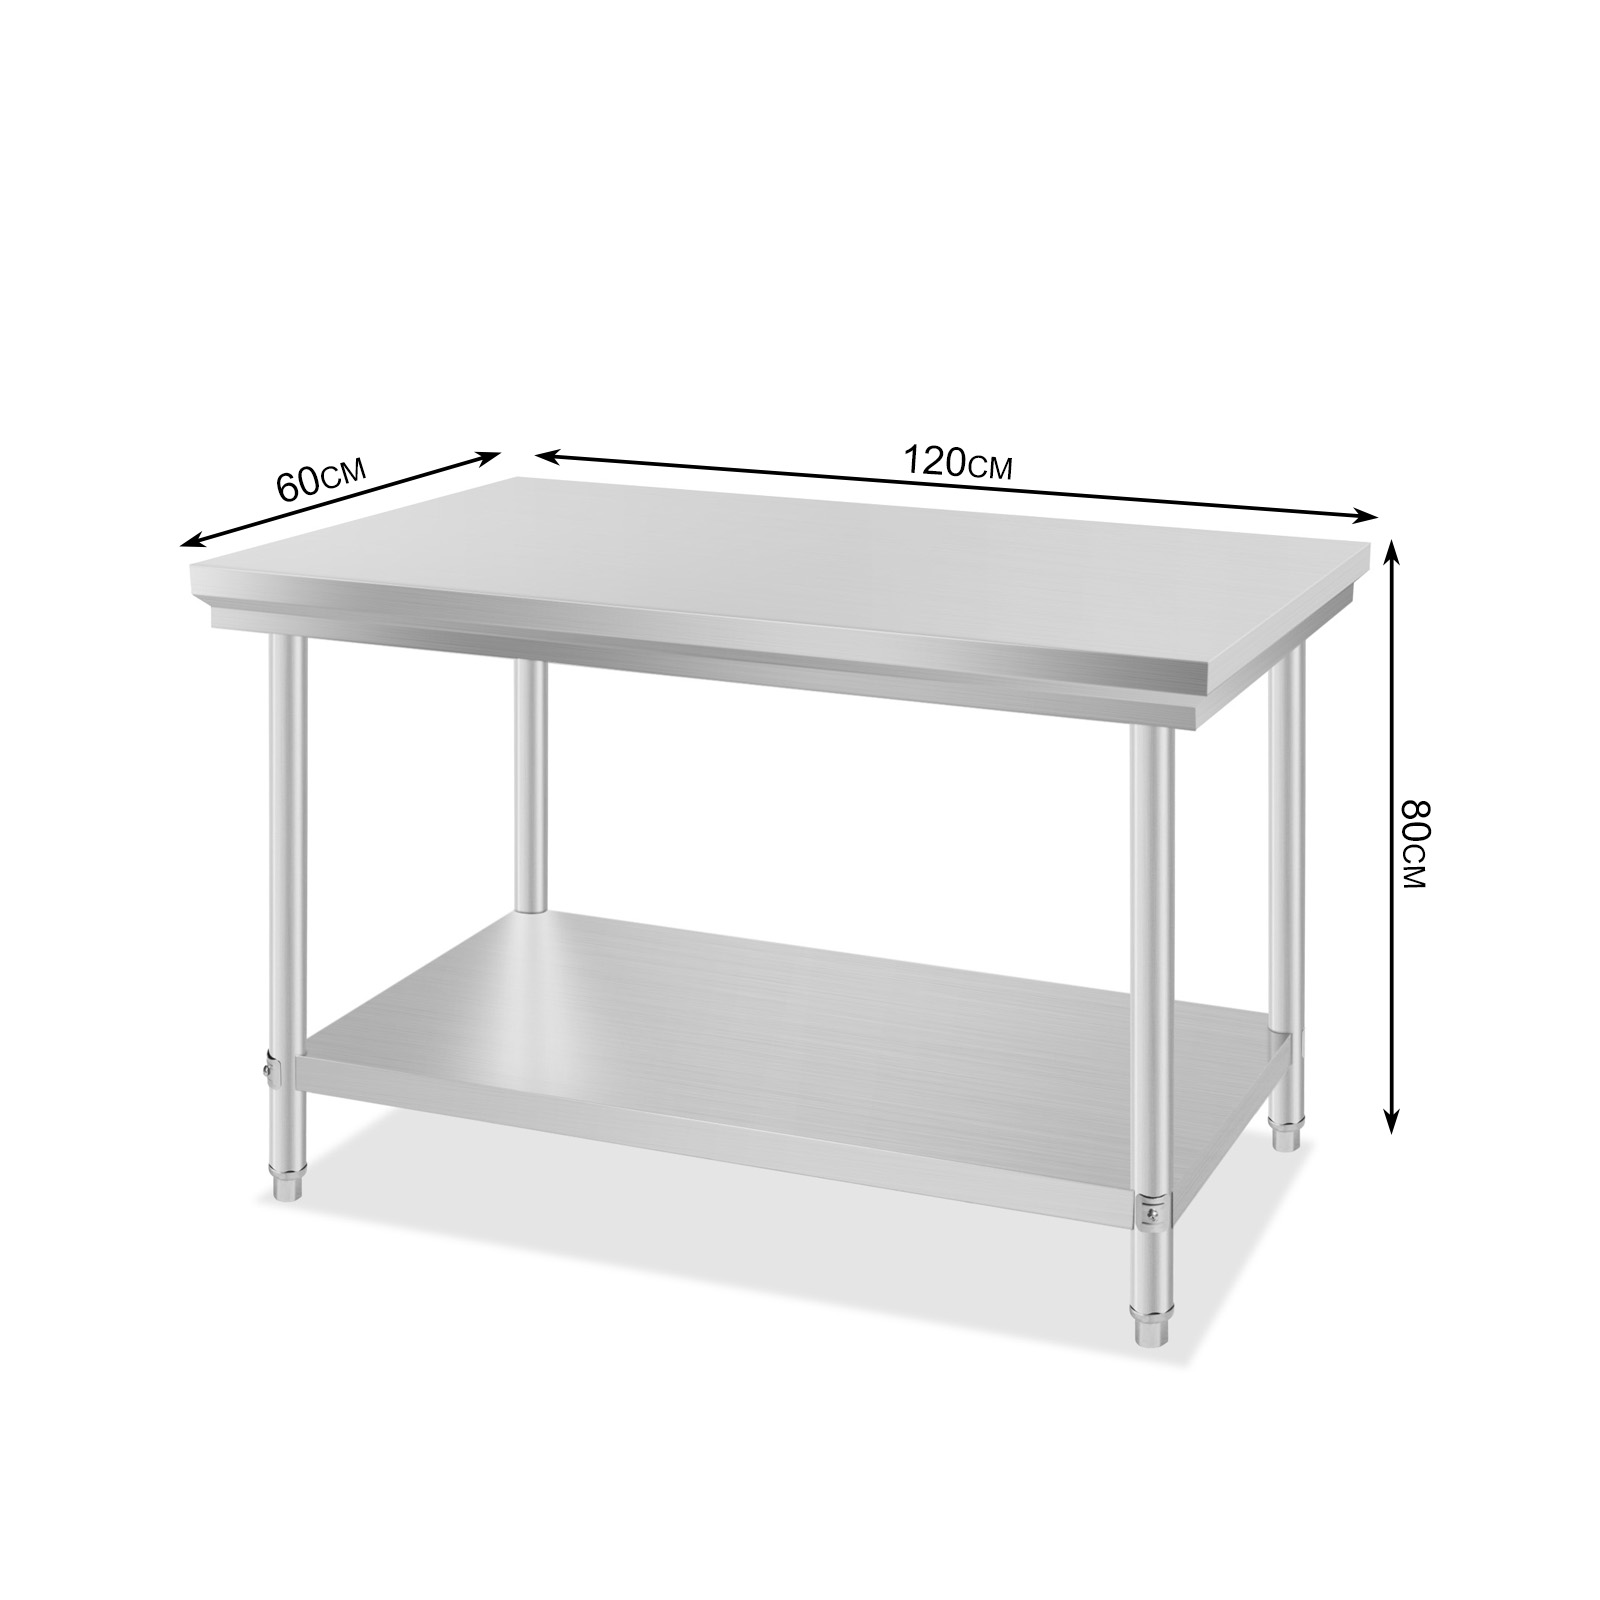 201 Commercial Stainless Steel Kitchen Work Bench Top Food